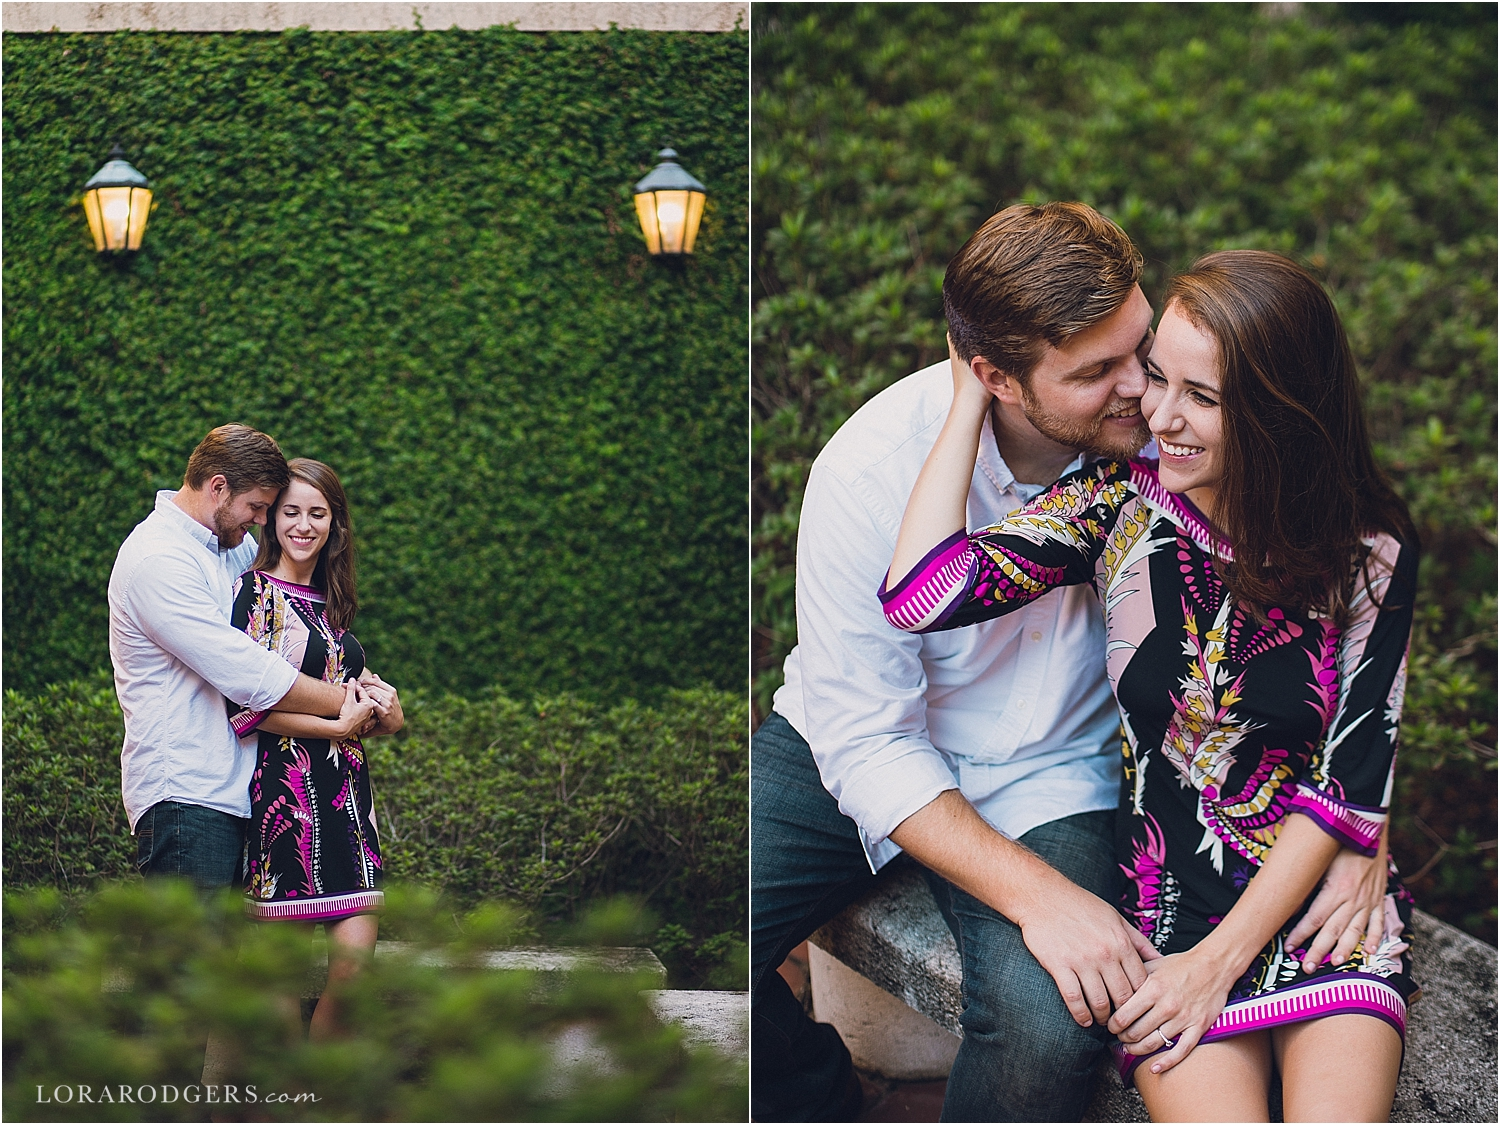 Rollins College Winter Park Florida Engagement Session